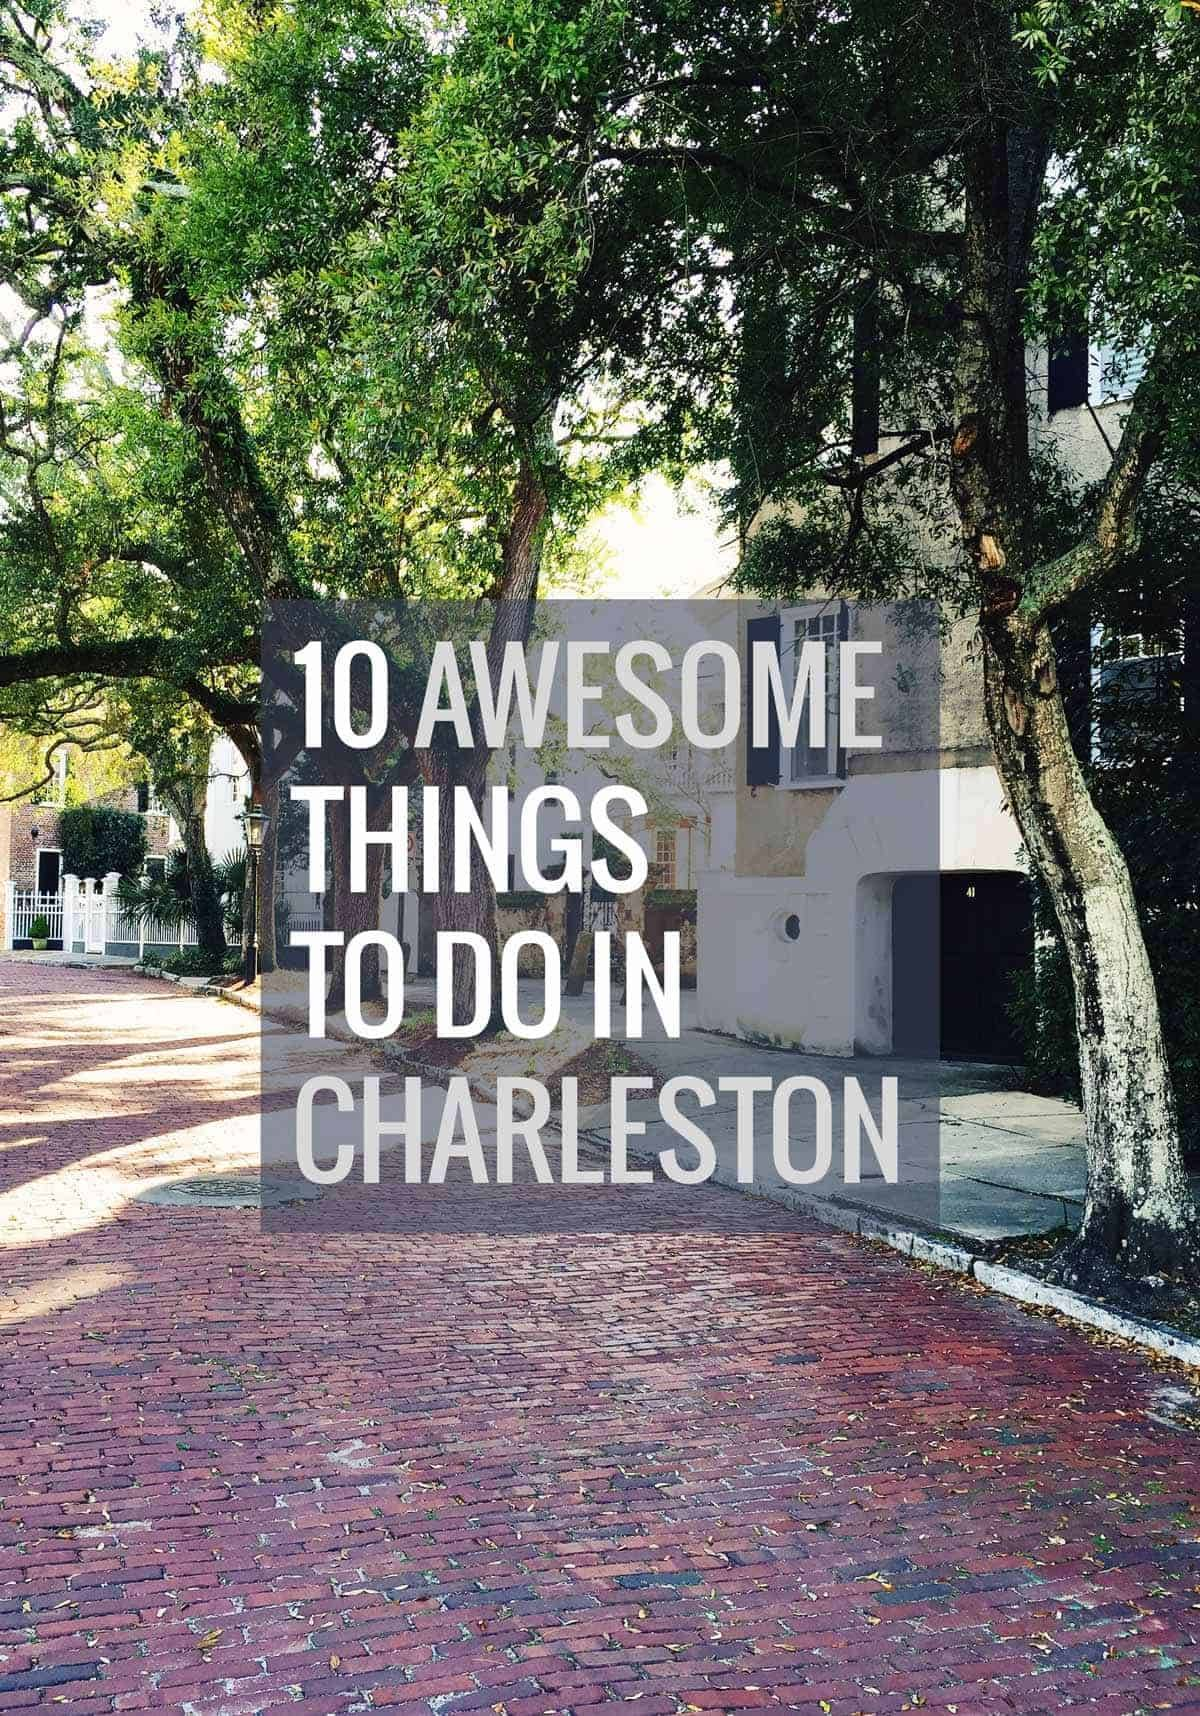 Ten awesome things to do in charleston pinch of yum for Things to do in charleston nc